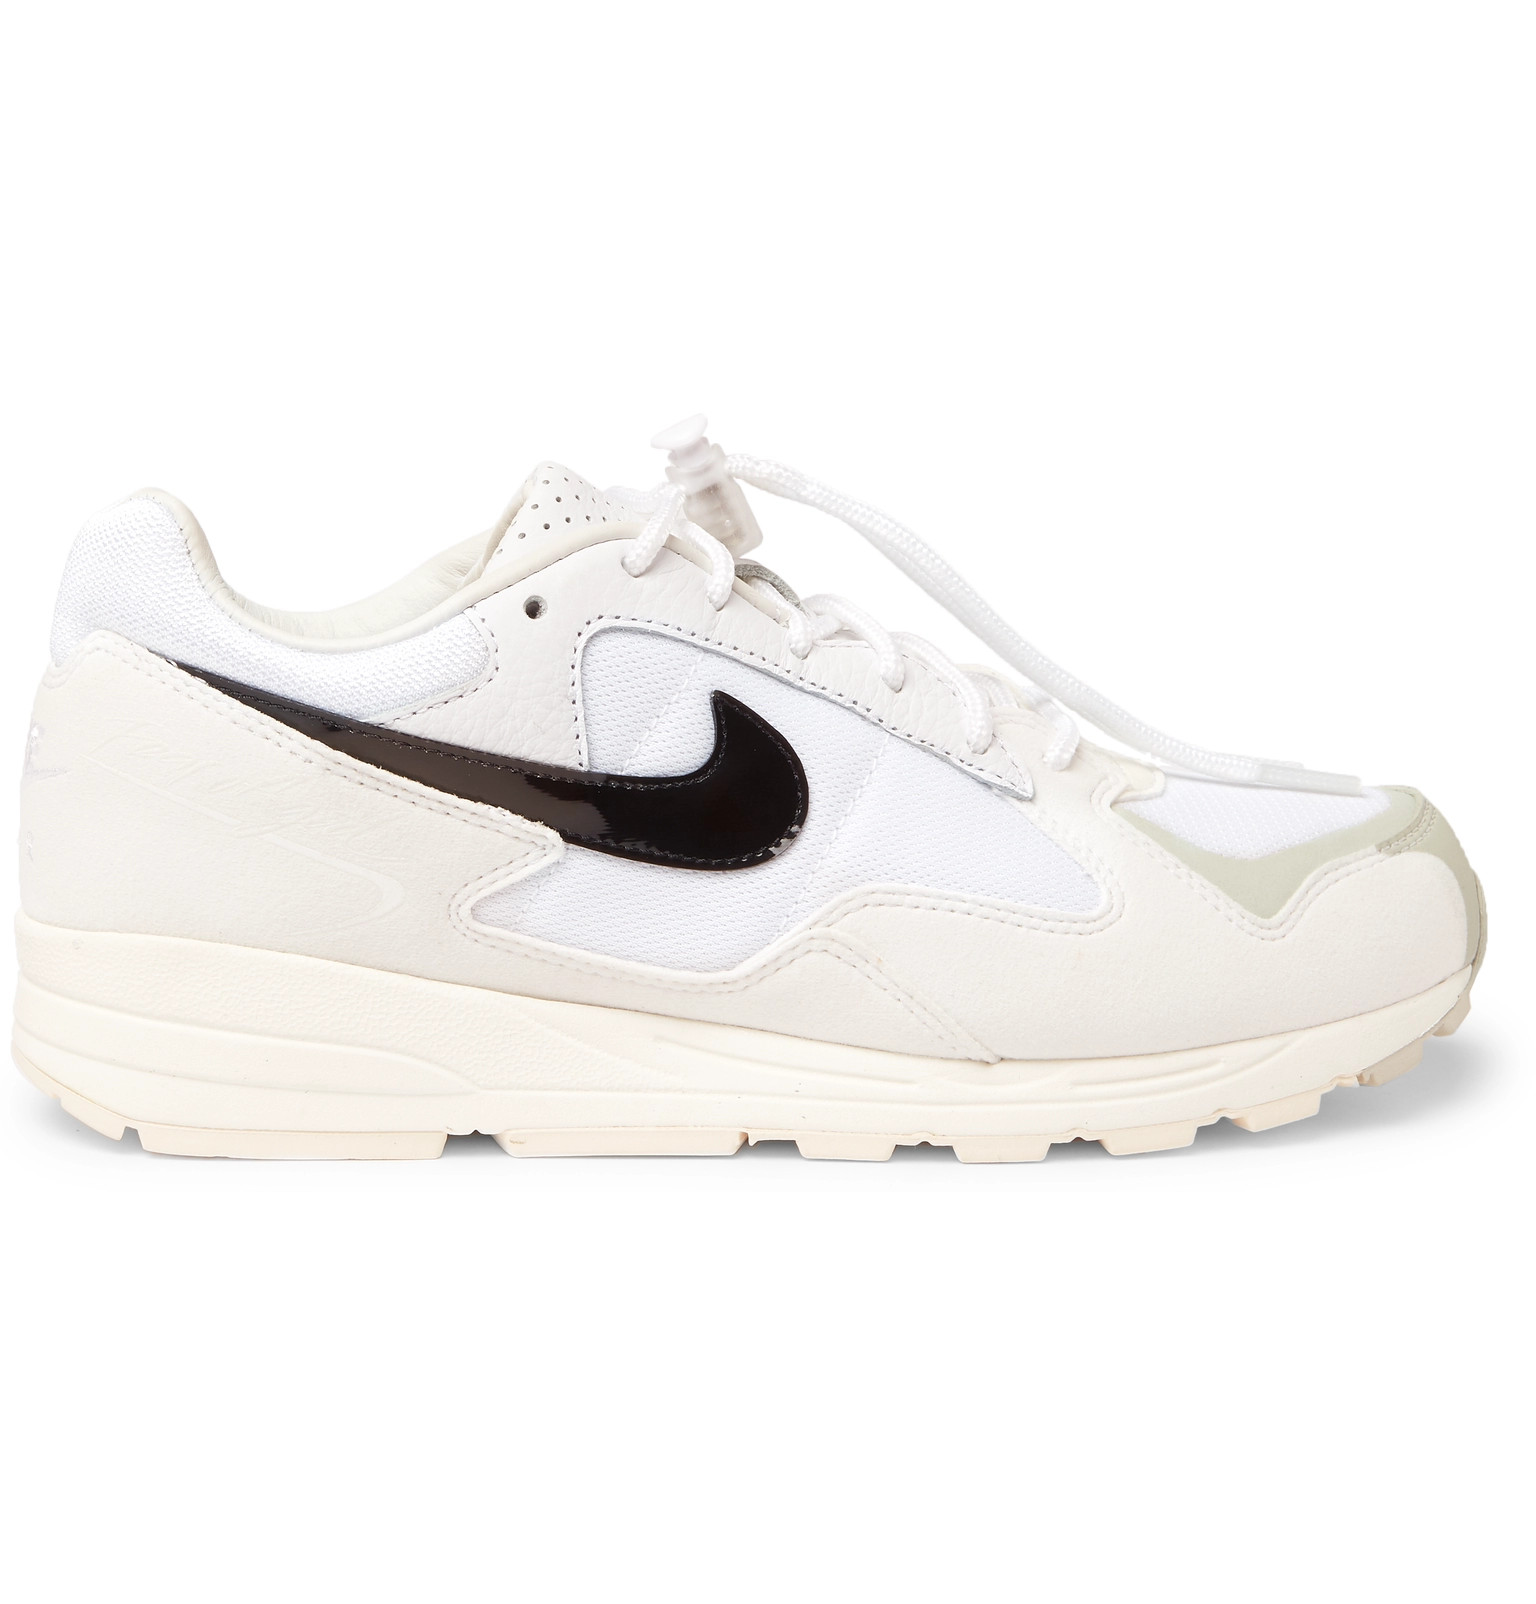 81ab54bda89a84 Nike - + Fear of God Air Skylon II Full-Grain Leather